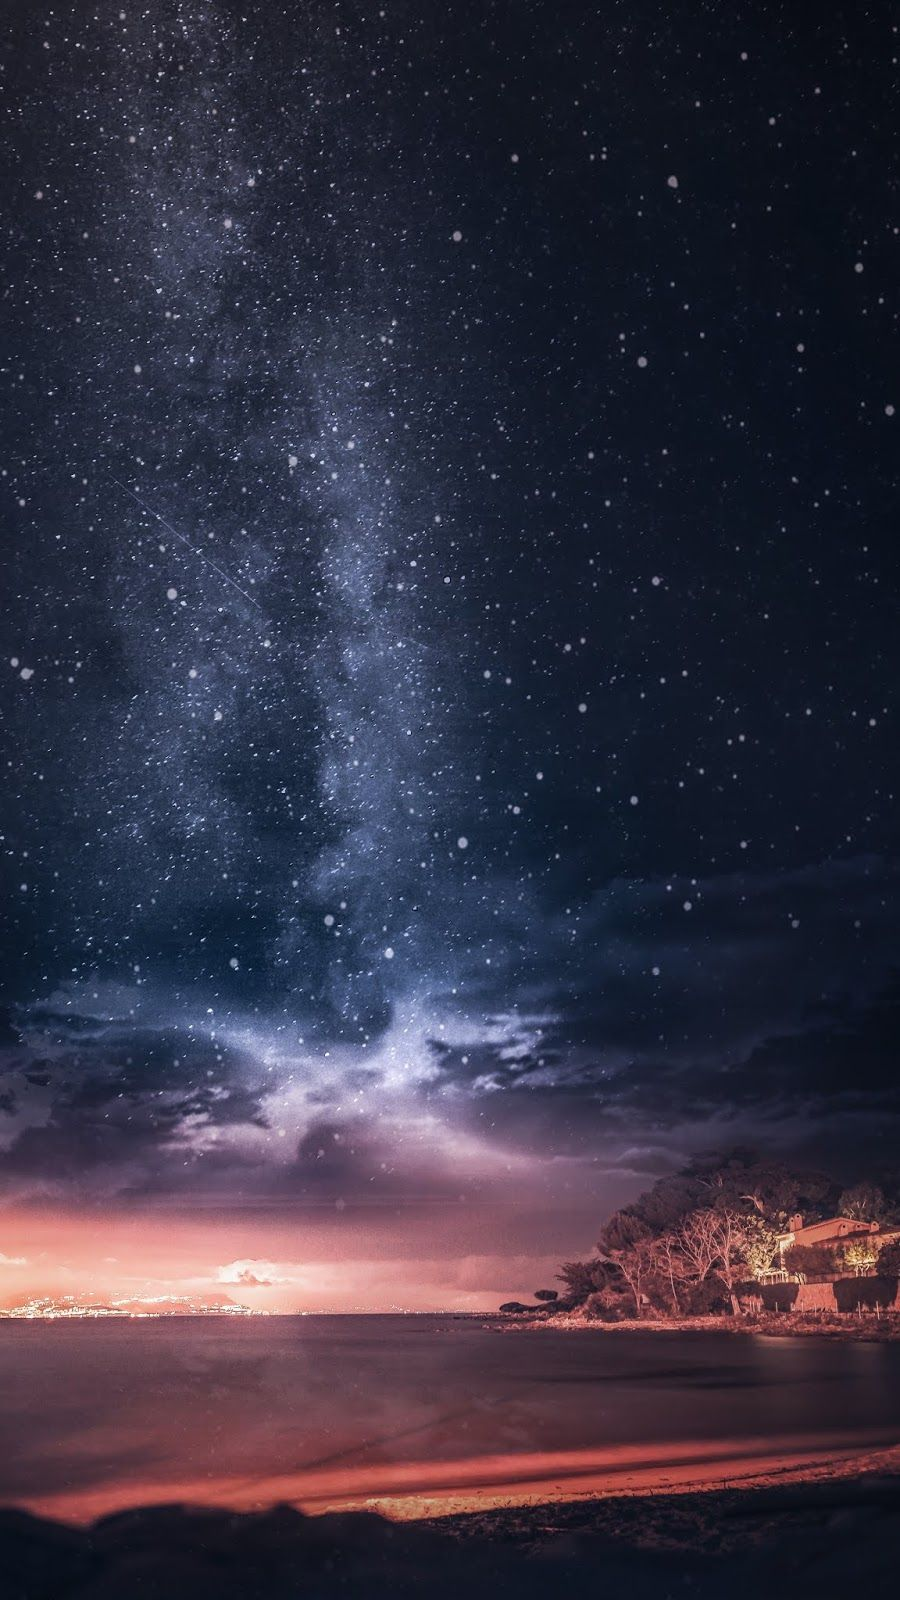 Sunset On Starry Night Wallpaper Iphone Android Sunset Wallpaper Night Sky Photography 4k Background